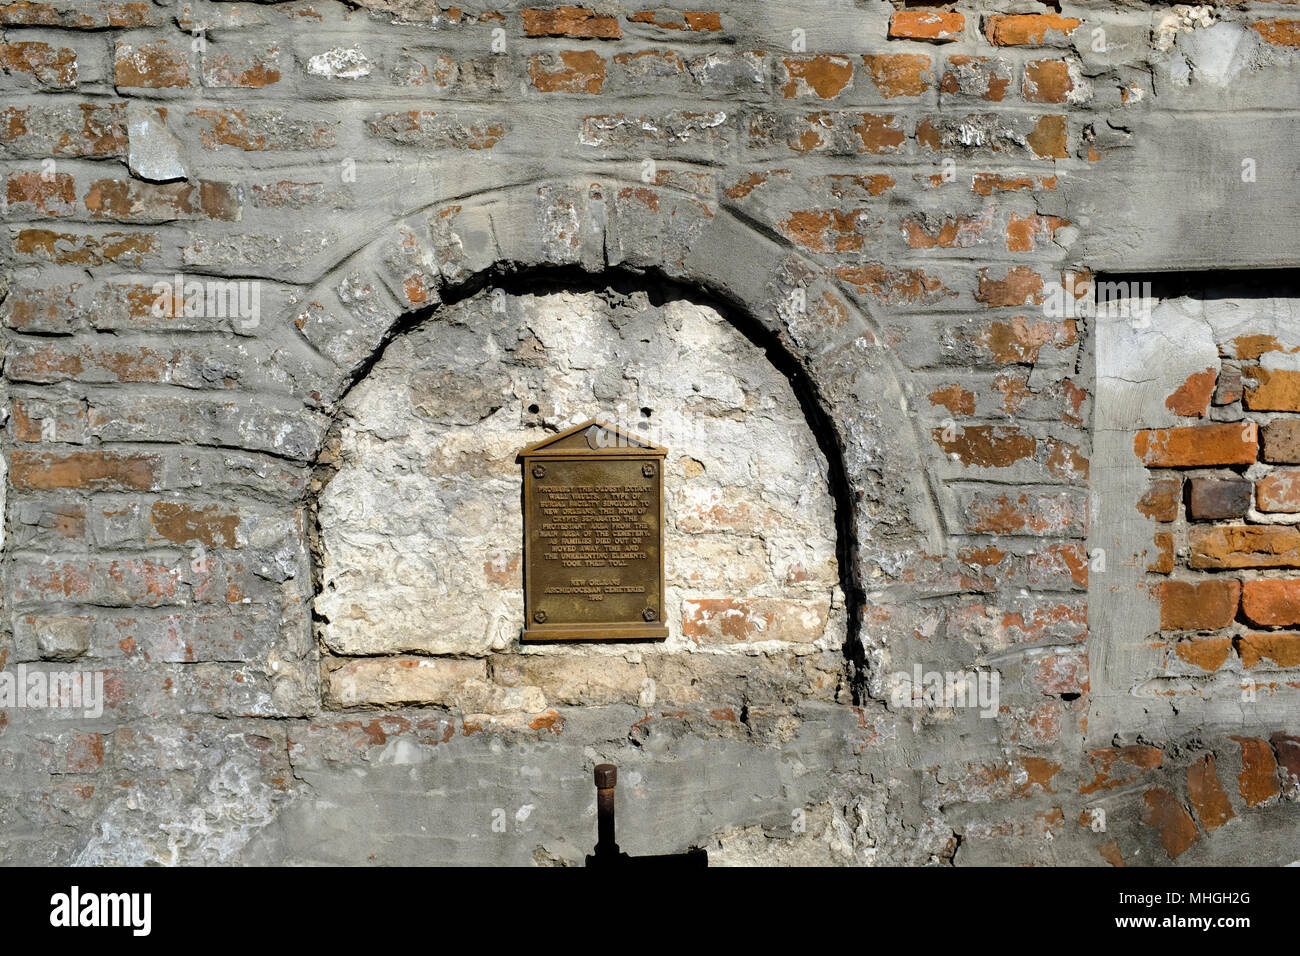 Oldest Wall Vault in Saint Louis Cemetery Number 1, New Orleans, Louisiana - Stock Image